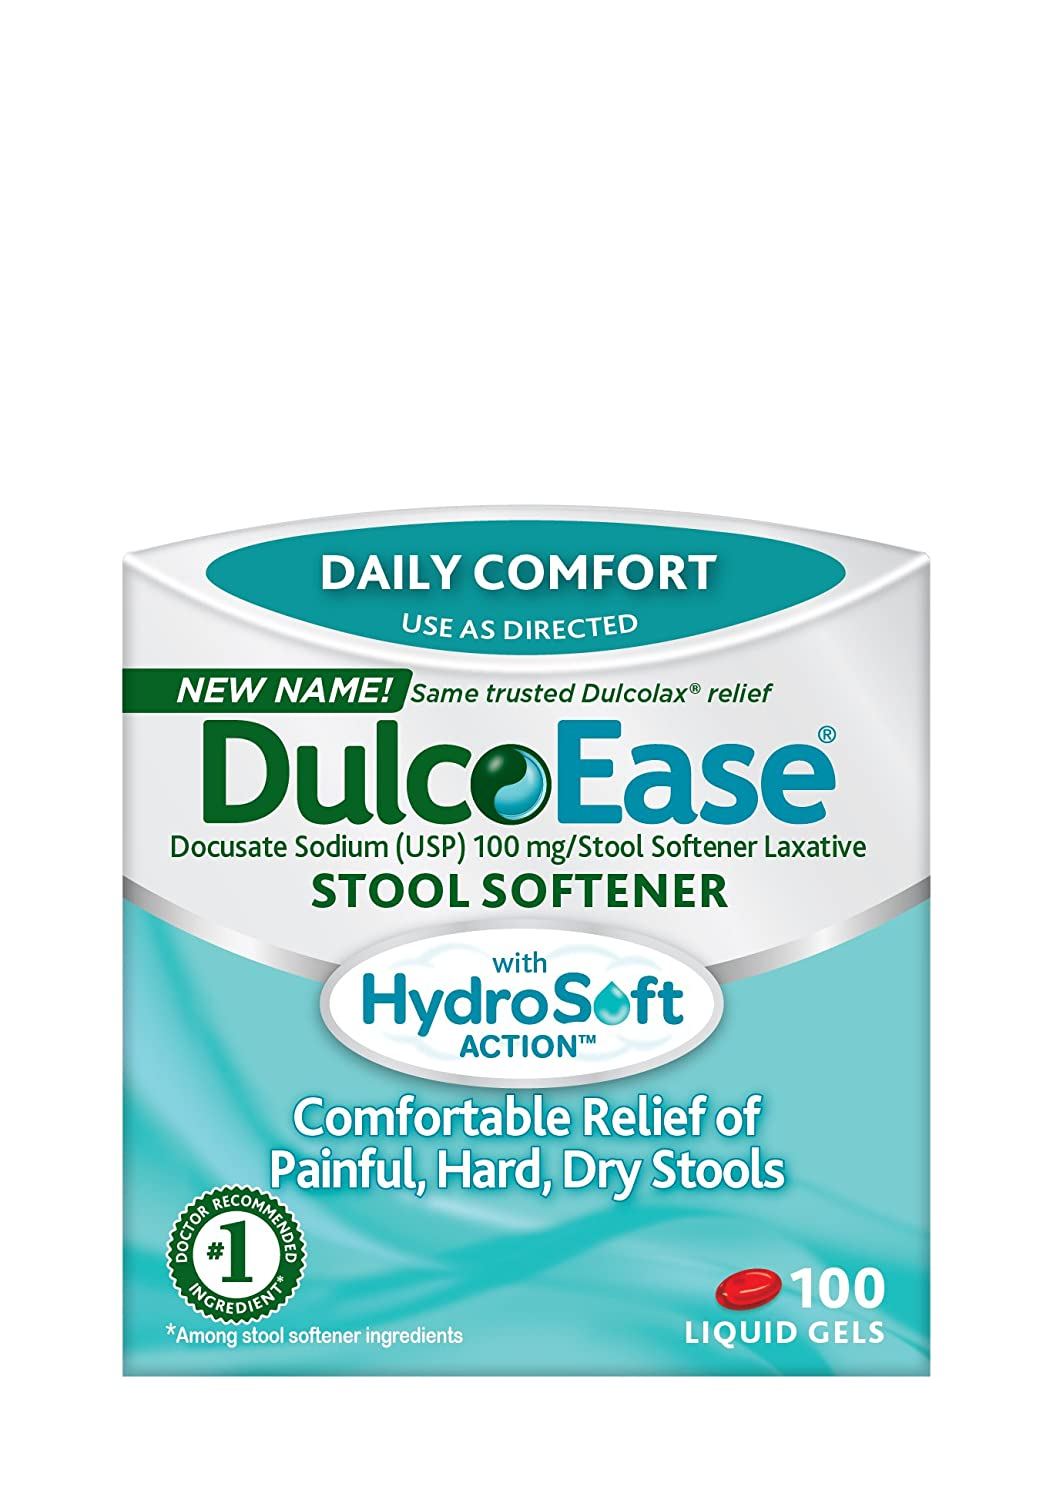 Amazon.com DulcoEase Stool Softener Liquid Gels 100 Count Health u0026 Personal Care  sc 1 st  Amazon.com & Amazon.com: DulcoEase Stool Softener Liquid Gels 100 Count ... islam-shia.org